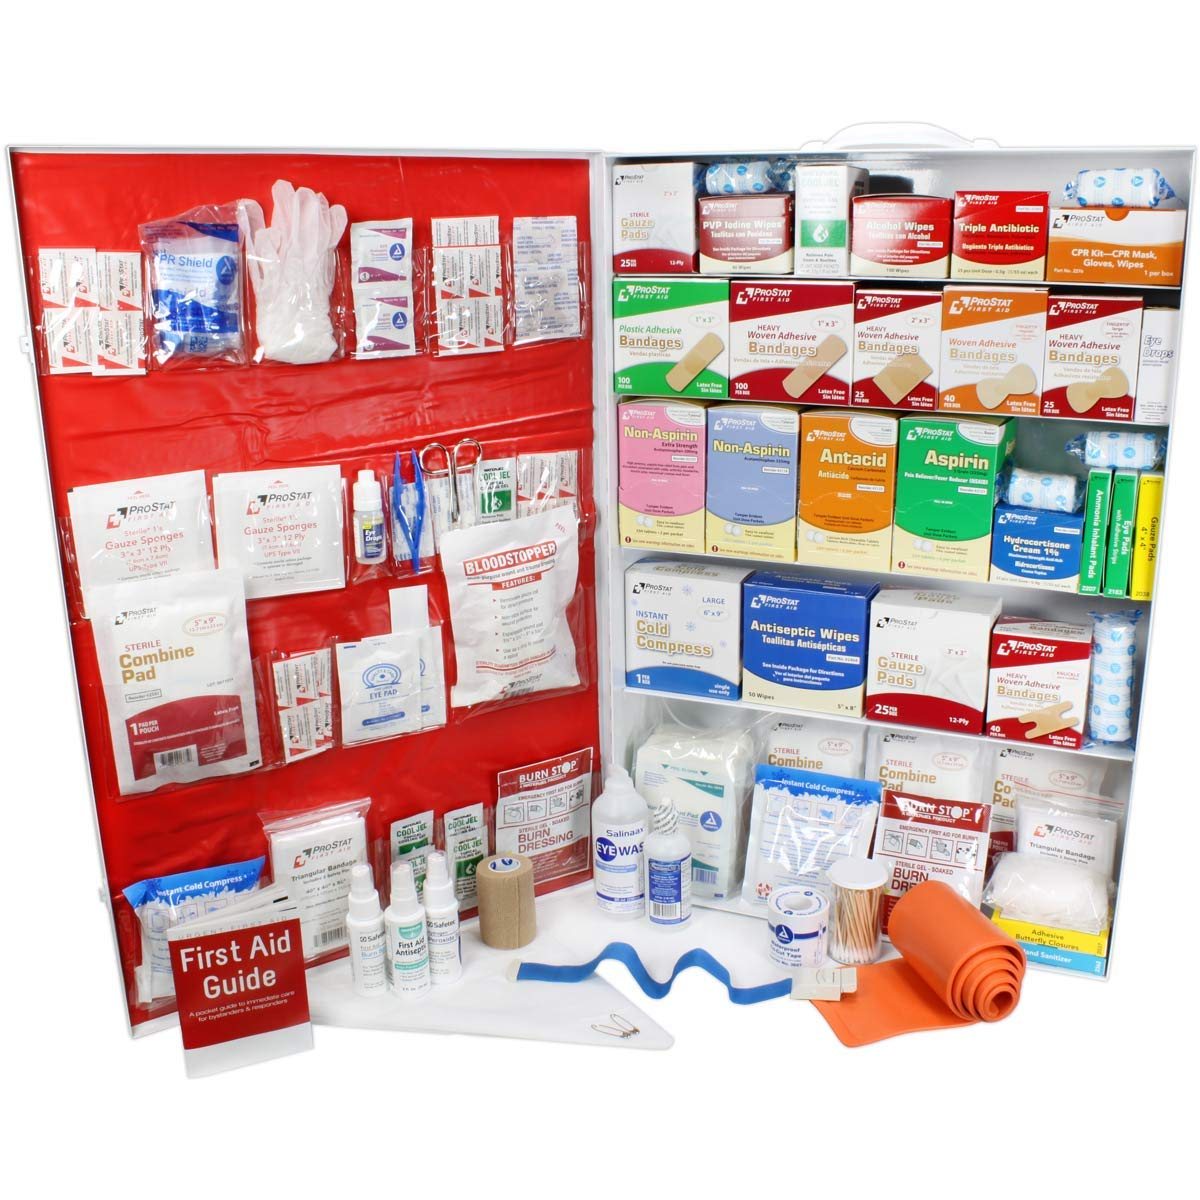 OSHA & ANSI 2 Shelf Industrial First Aid Cabinet with Pocket Liner, 75 Person, 562 Pieces, 2015 Class B+, Types I & II, Made in USA by Urgent First AidTM with Extra Content & New ANSI First Aid Guide by Urgent First Aid